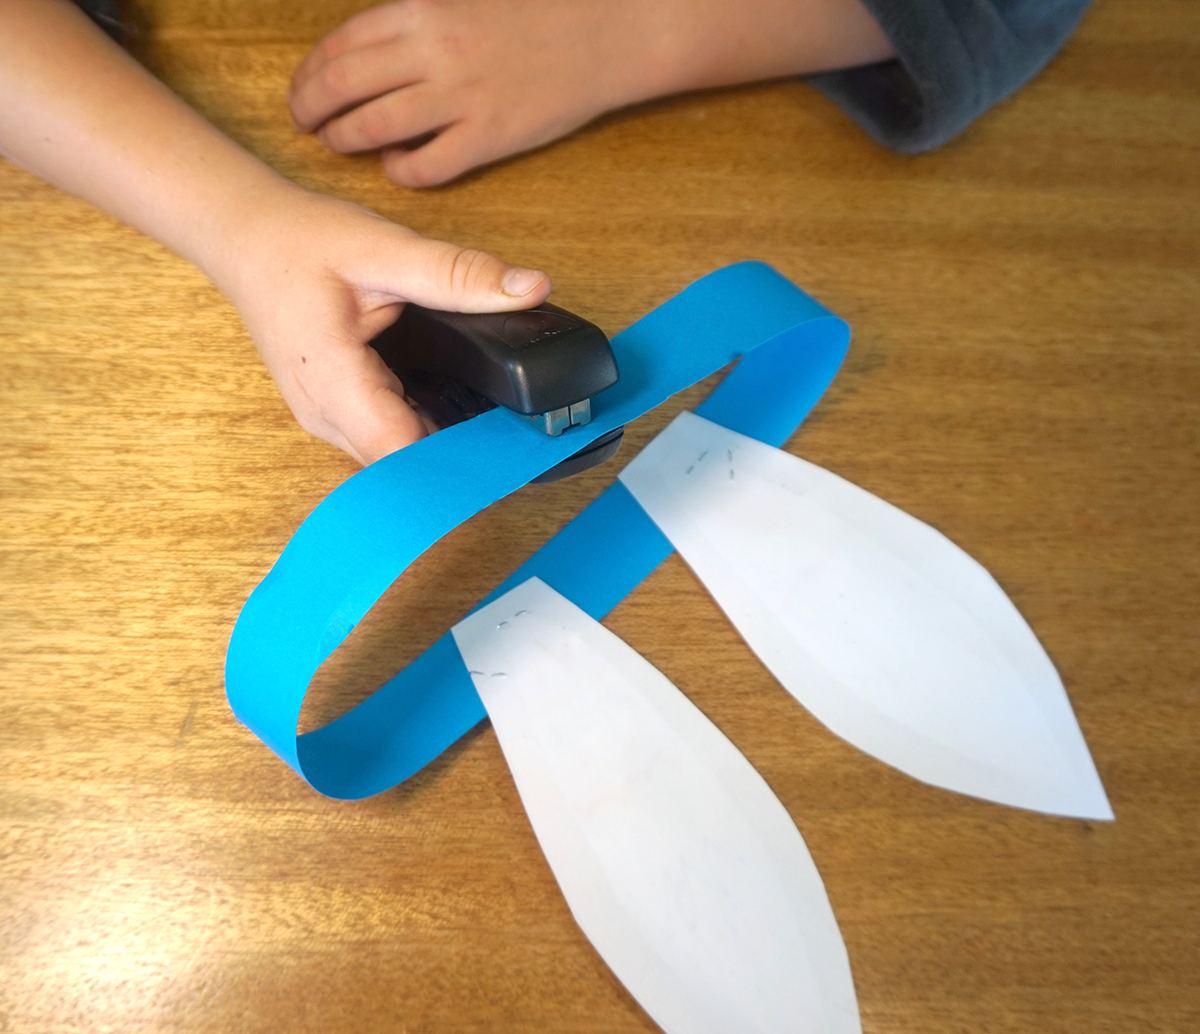 Boy stapling paper ribbon ends together to form a circle.